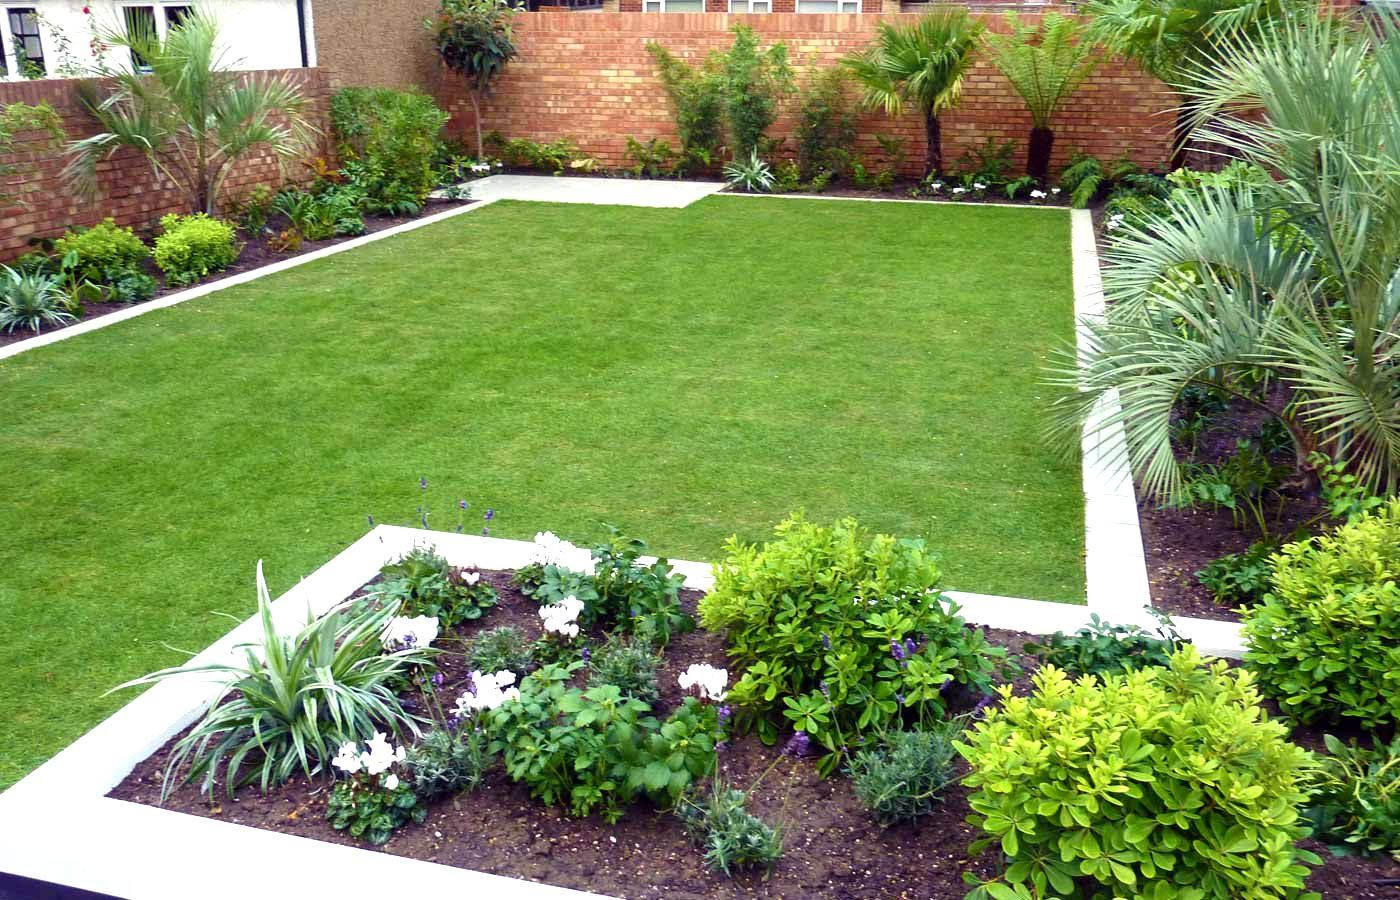 Simple garden designs no fret small garden design for Small garden landscape